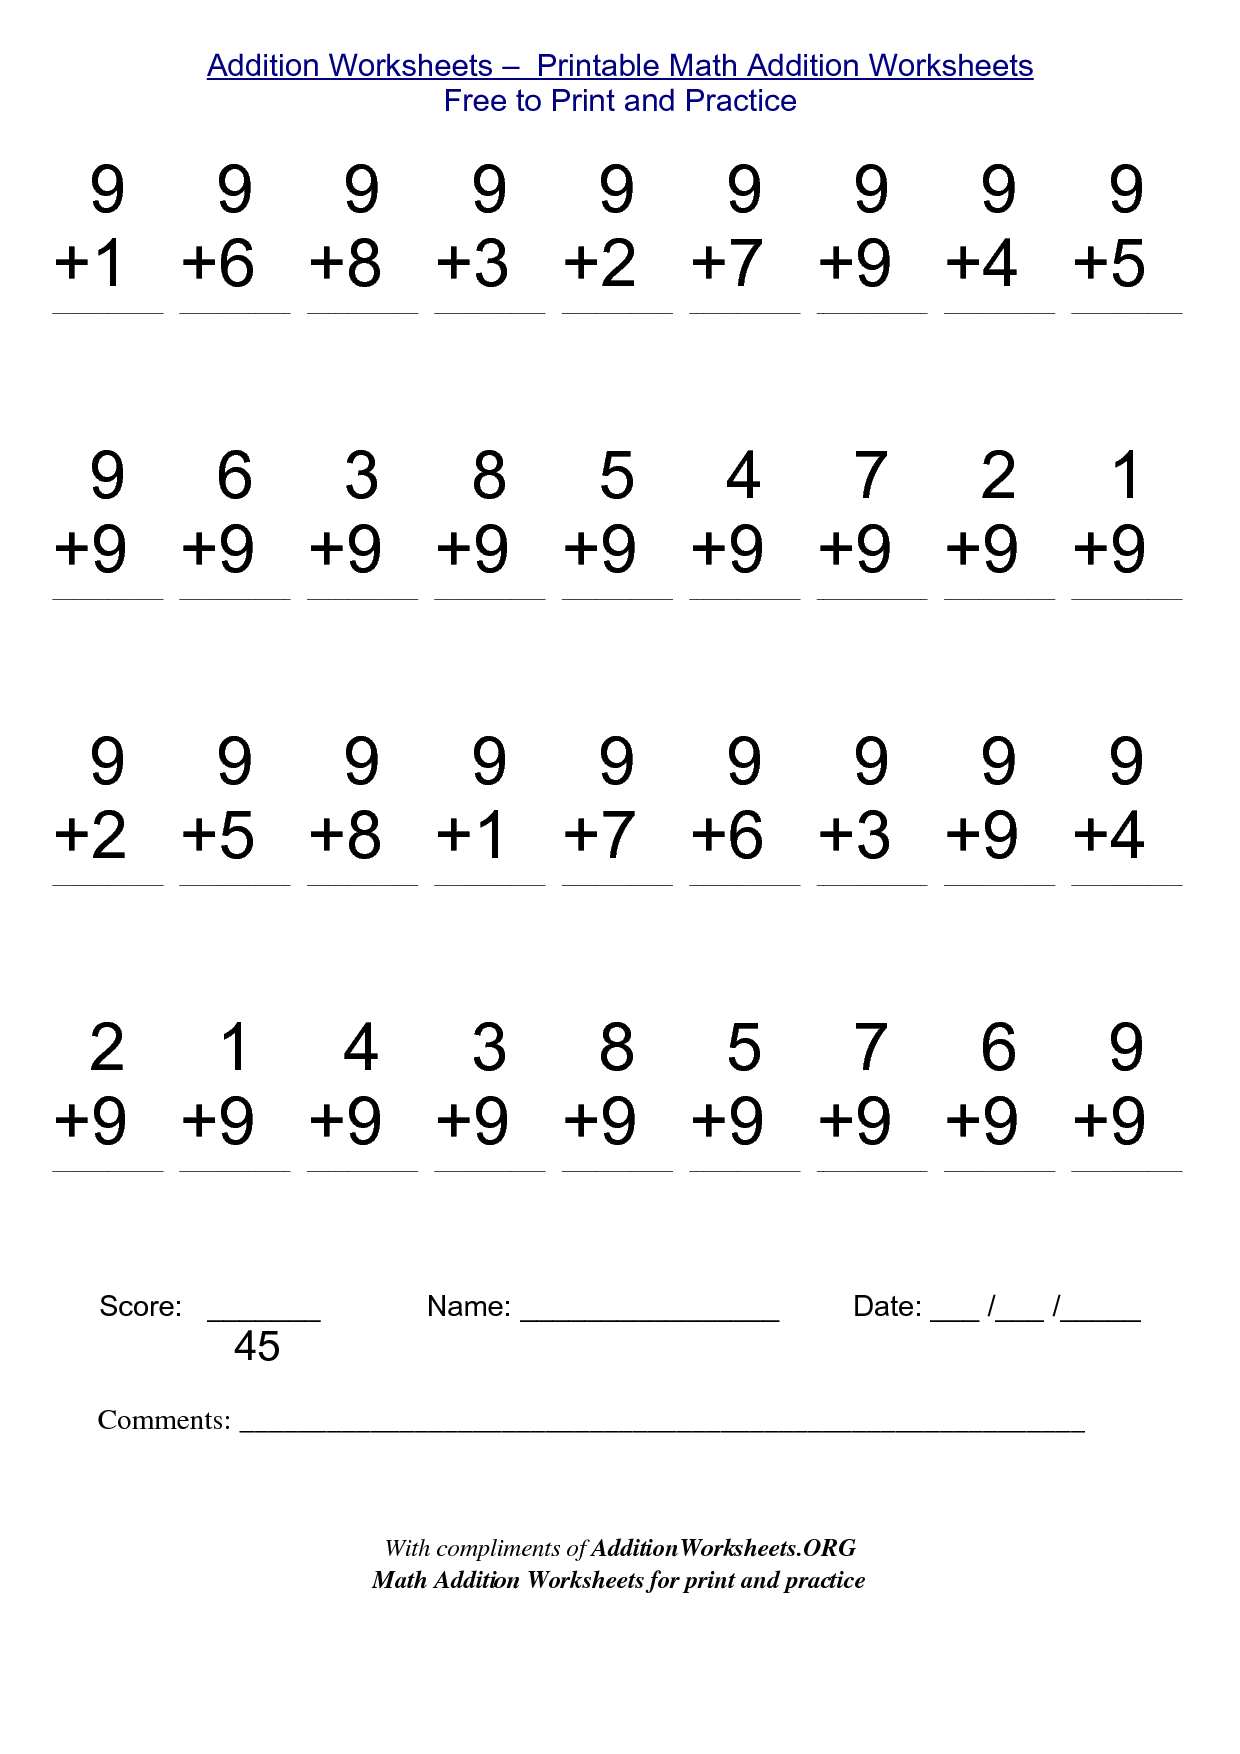 1st Grade Math Worksheets Free Printable - Gamersn